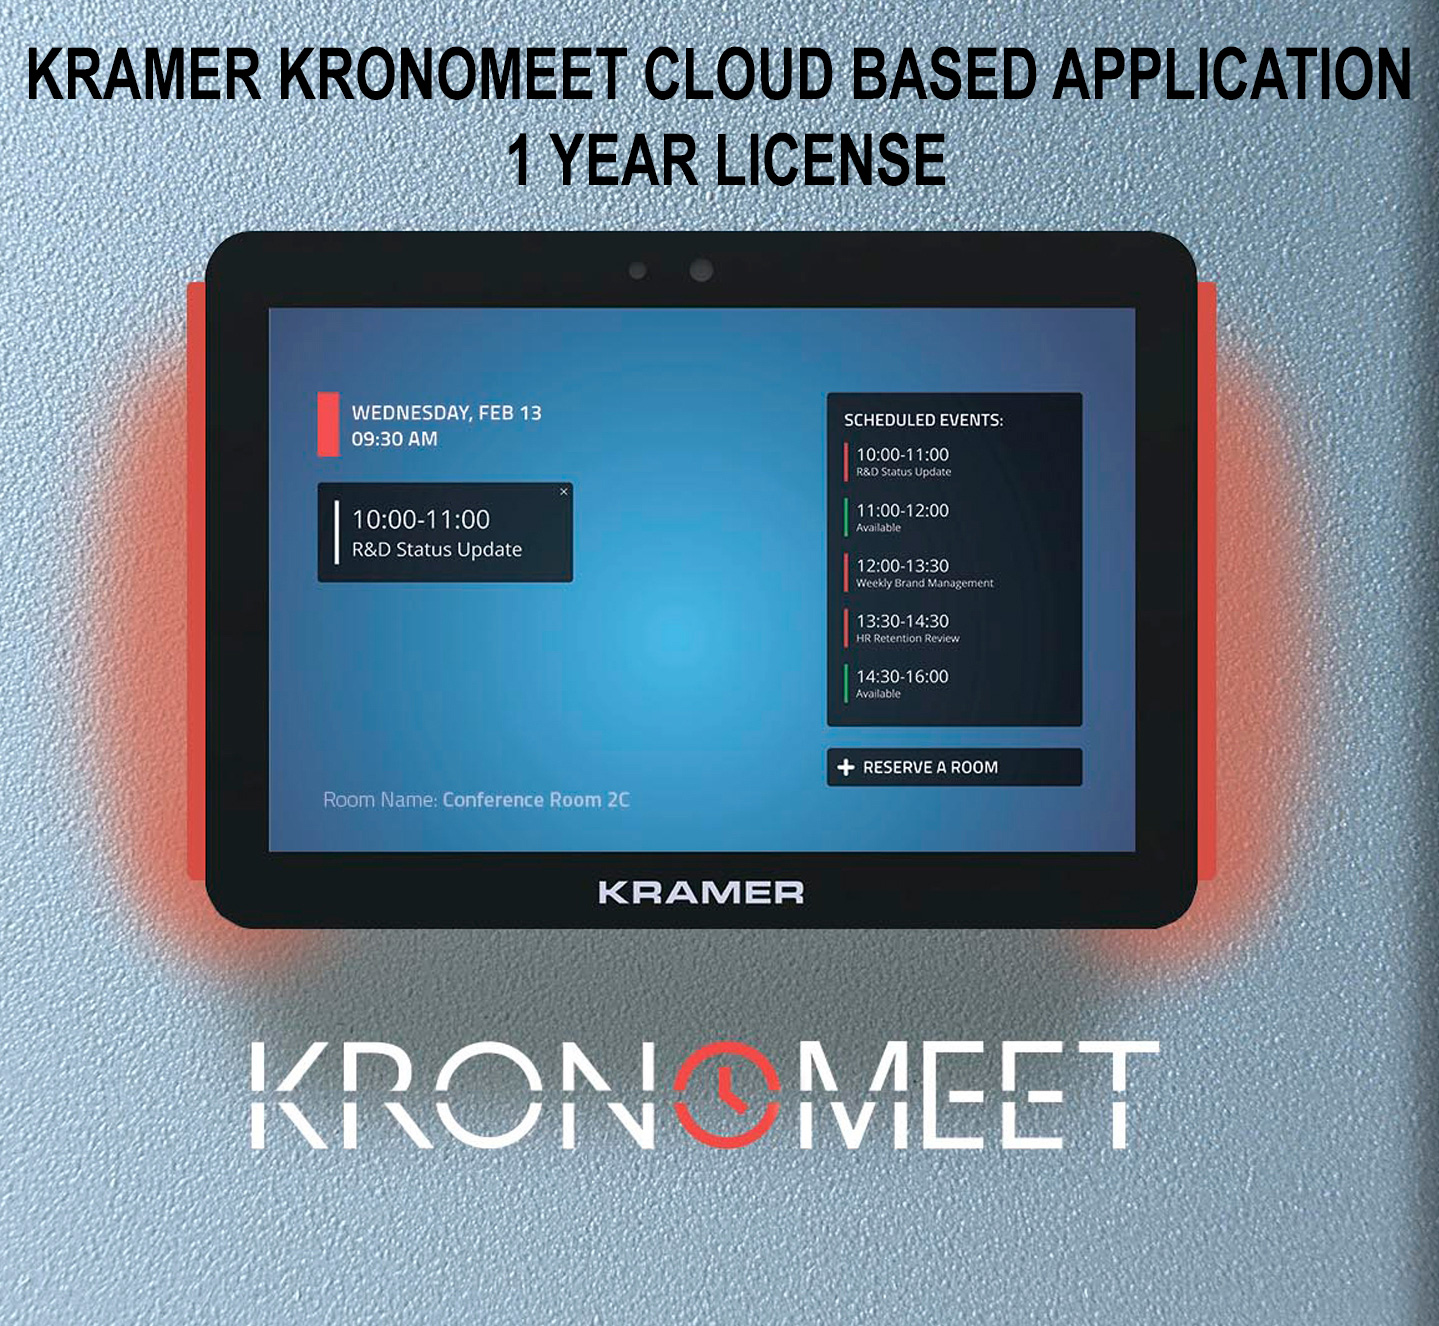 Kramer KRONOMEET-SW-EXT-1Y Software Extension for 1 Year  KR-KROMEETSWEXT1